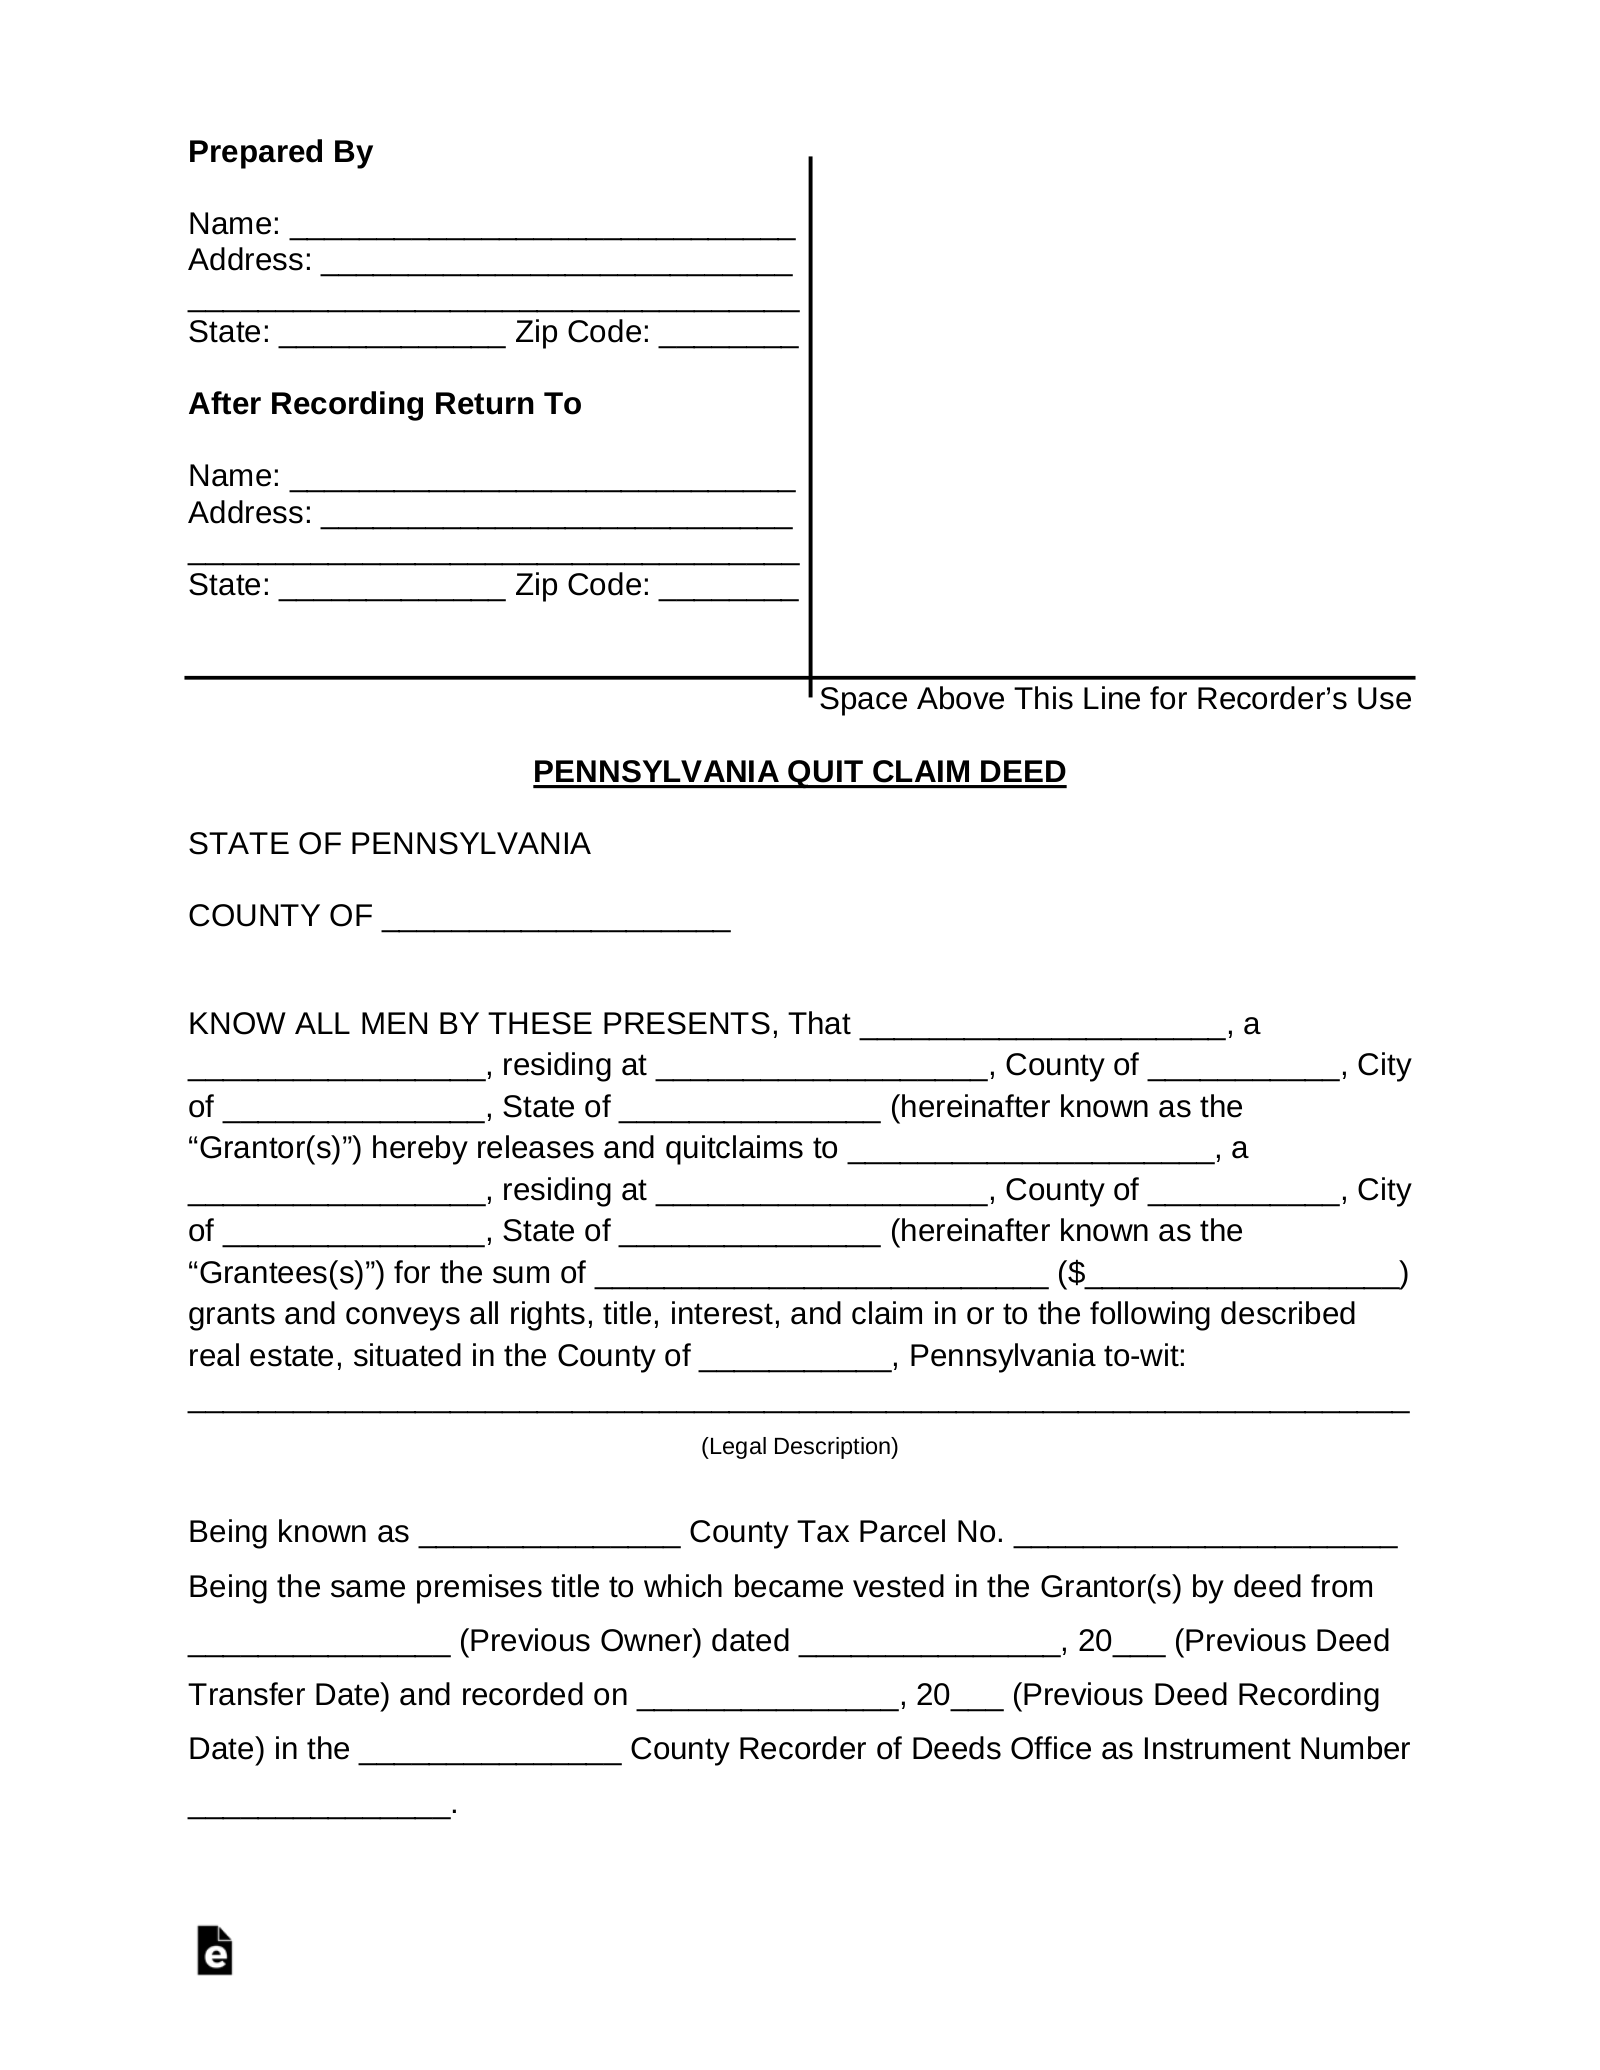 quick claim deed form indiana  Free Pennsylvania Quit Claim Deed Form - Word | PDF | eForms ...